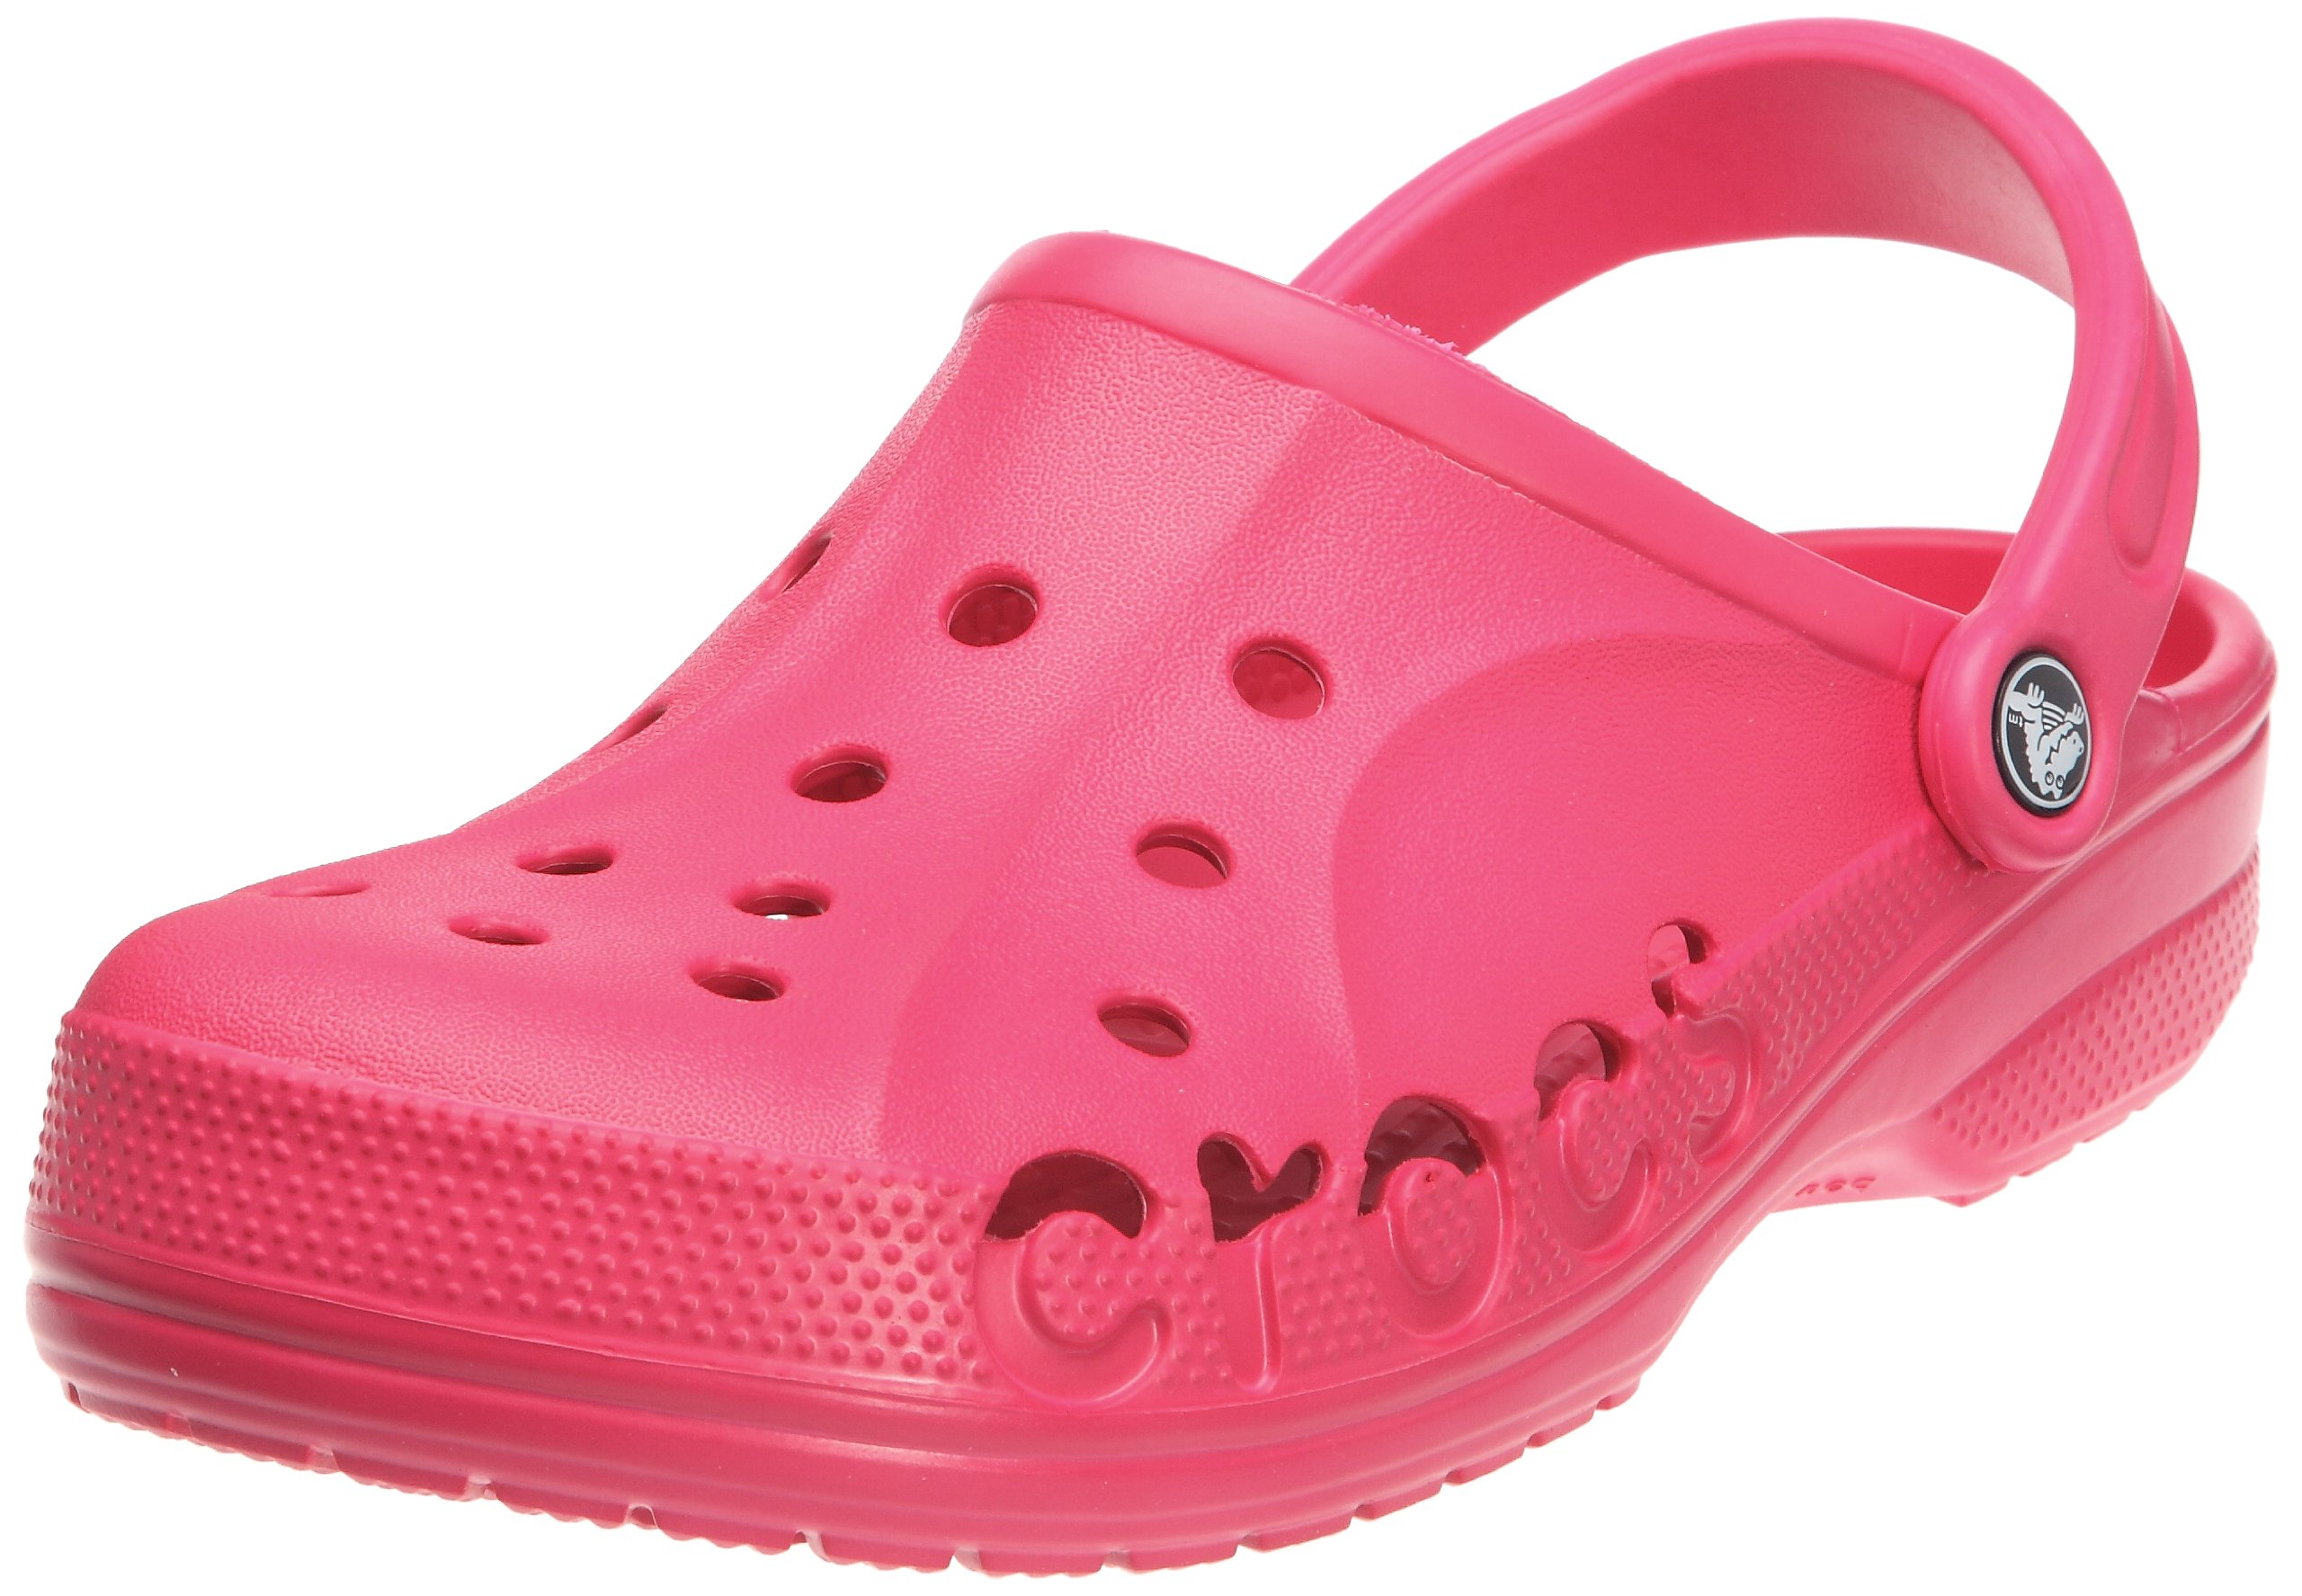 crocs Unisex Baya Clog, Raspberry, 4 M (D) US Men / 6 M (B) US Women by Crocs